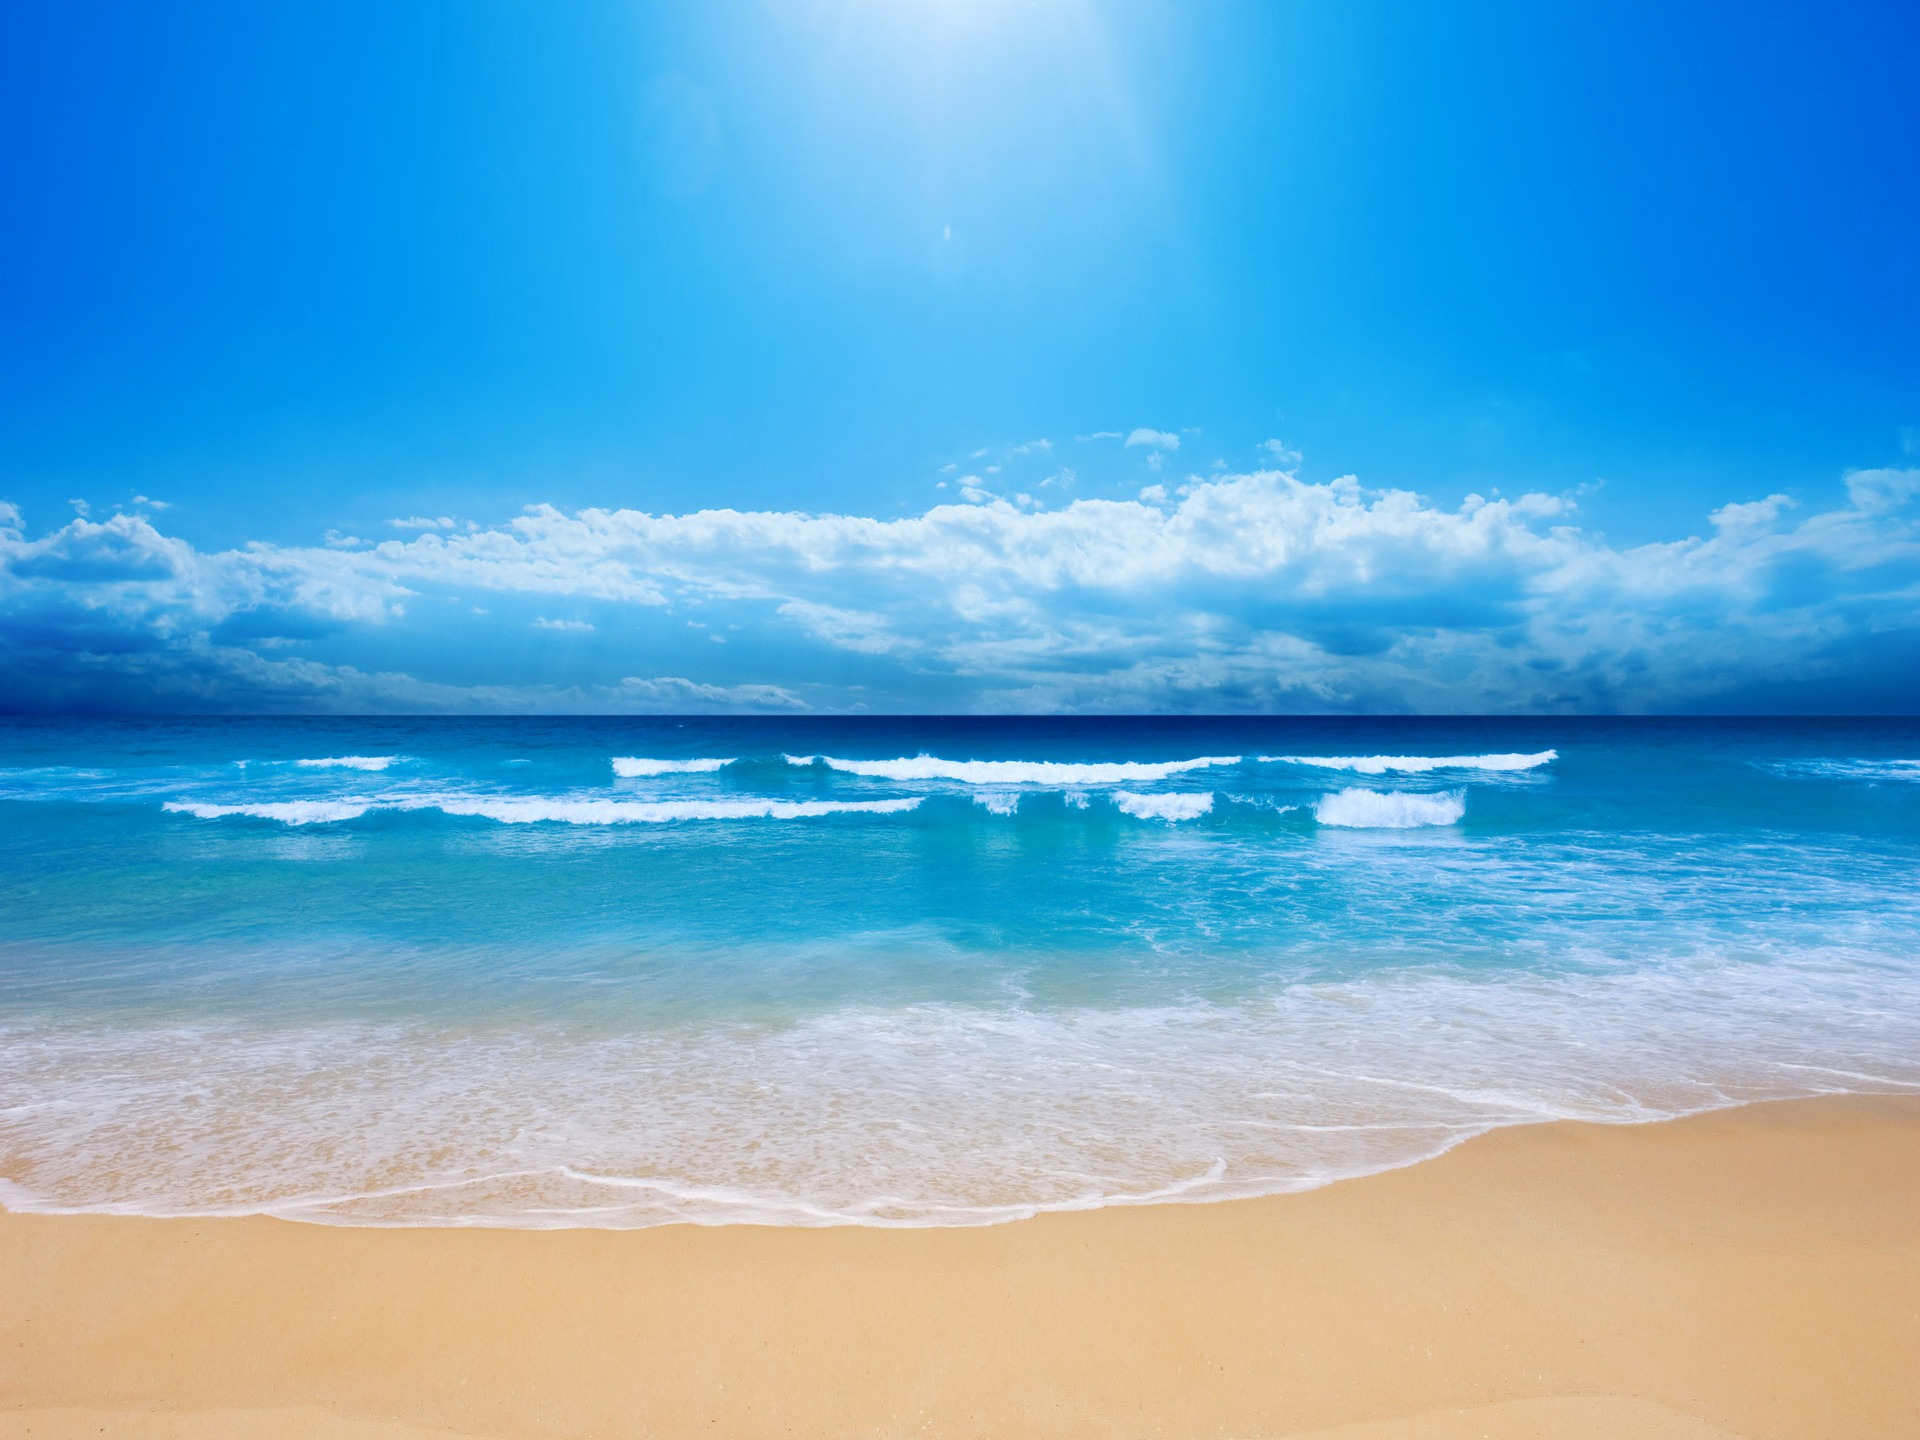 Beach waves iphone 6 plus wallpaper.jpg (1080?1920) | Wallpaper ...